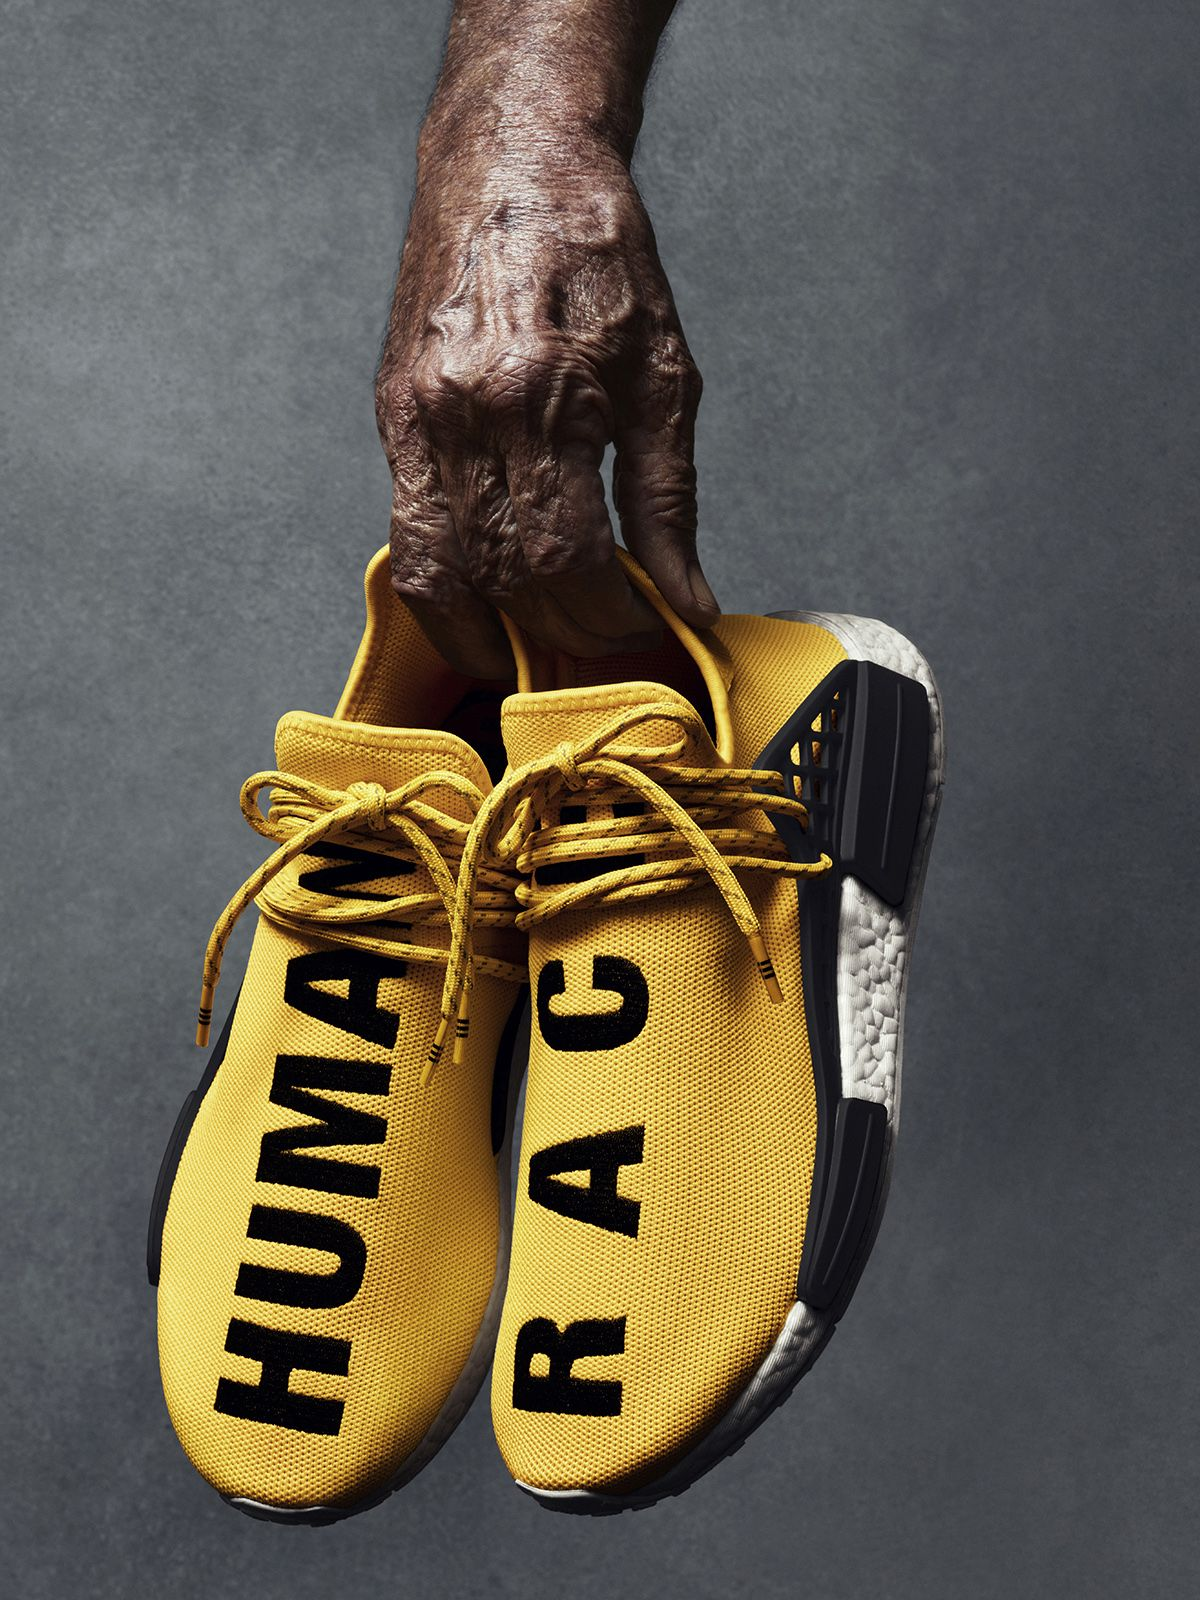 Pharrell & adidas Are Launching an NMD